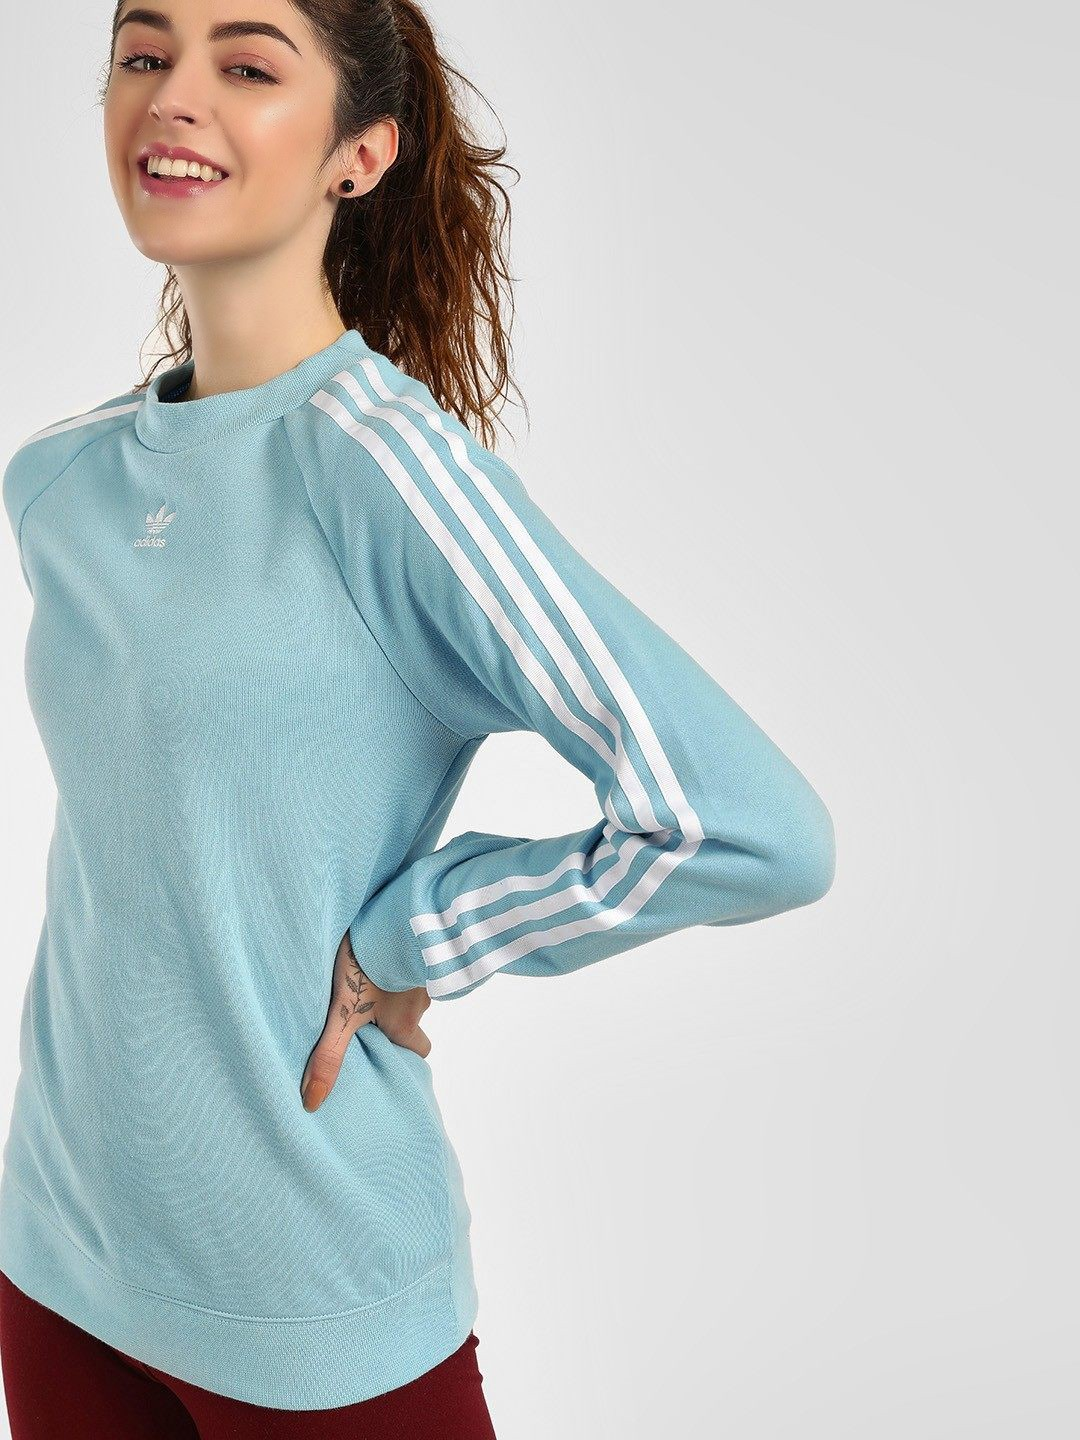 Adidas Originals Blue Trefoil Sweatshirt 1